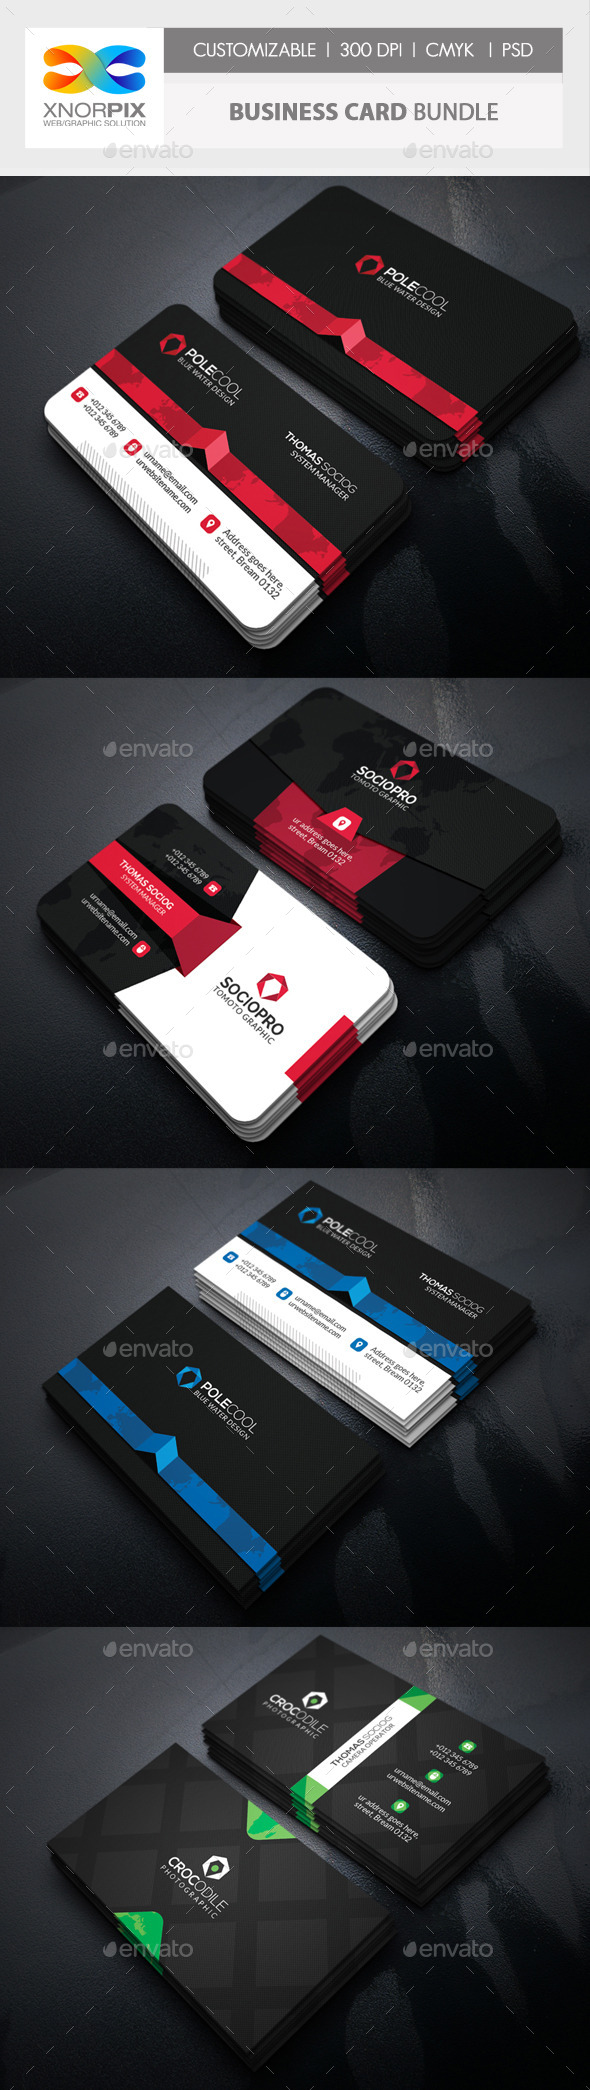 Business Card Bundle 3 in 1-Vol 55 - Corporate Business Cards